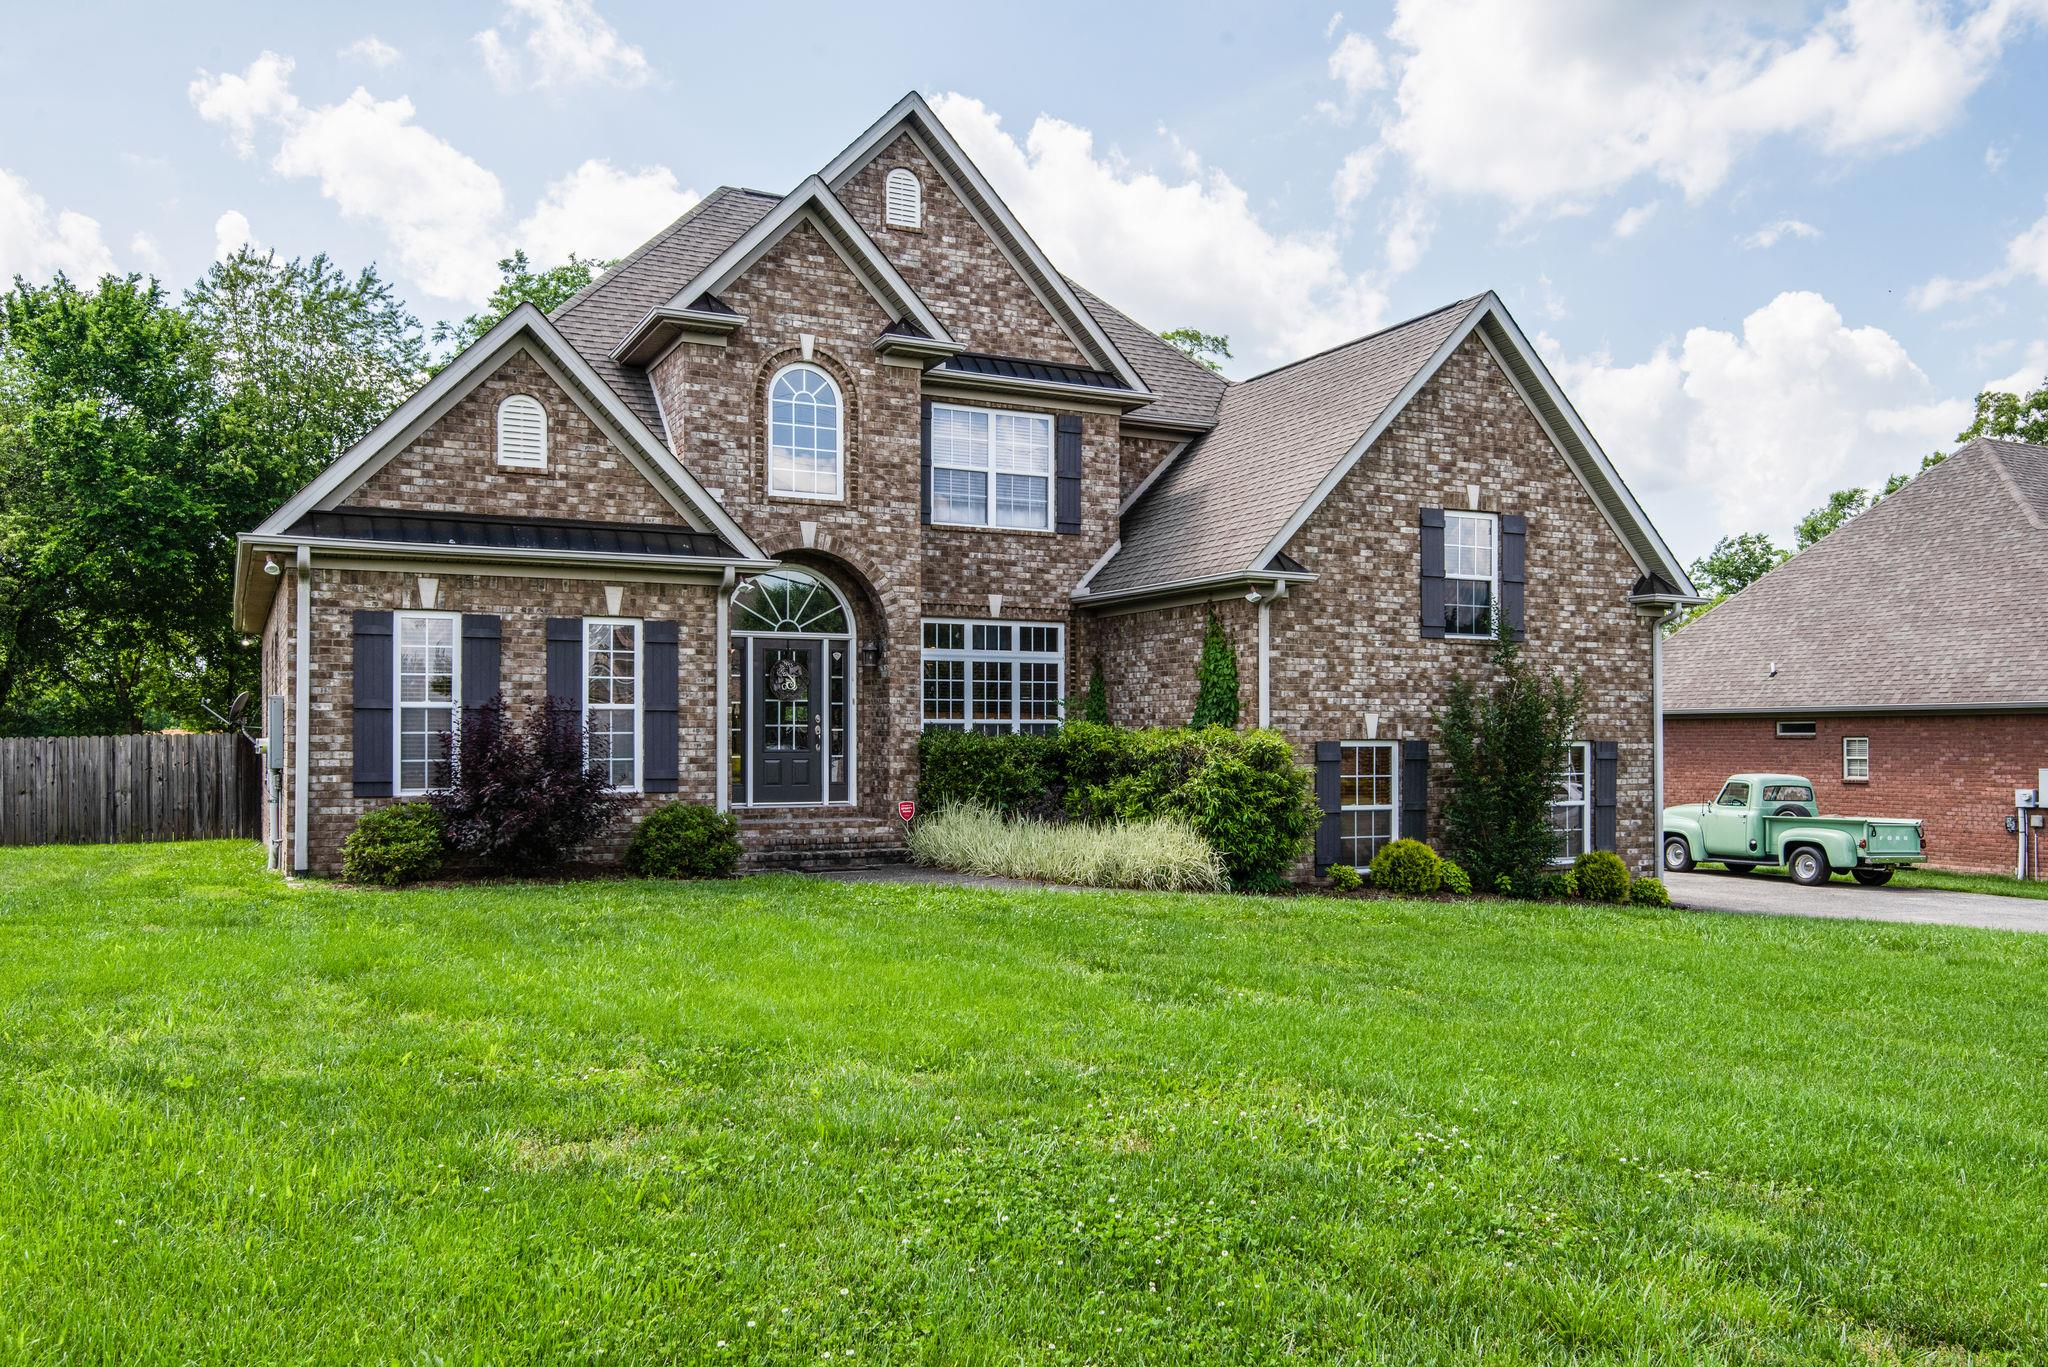 7115 Donald Wilson Dr, Fairview in Williamson County County, TN 37062 Home for Sale